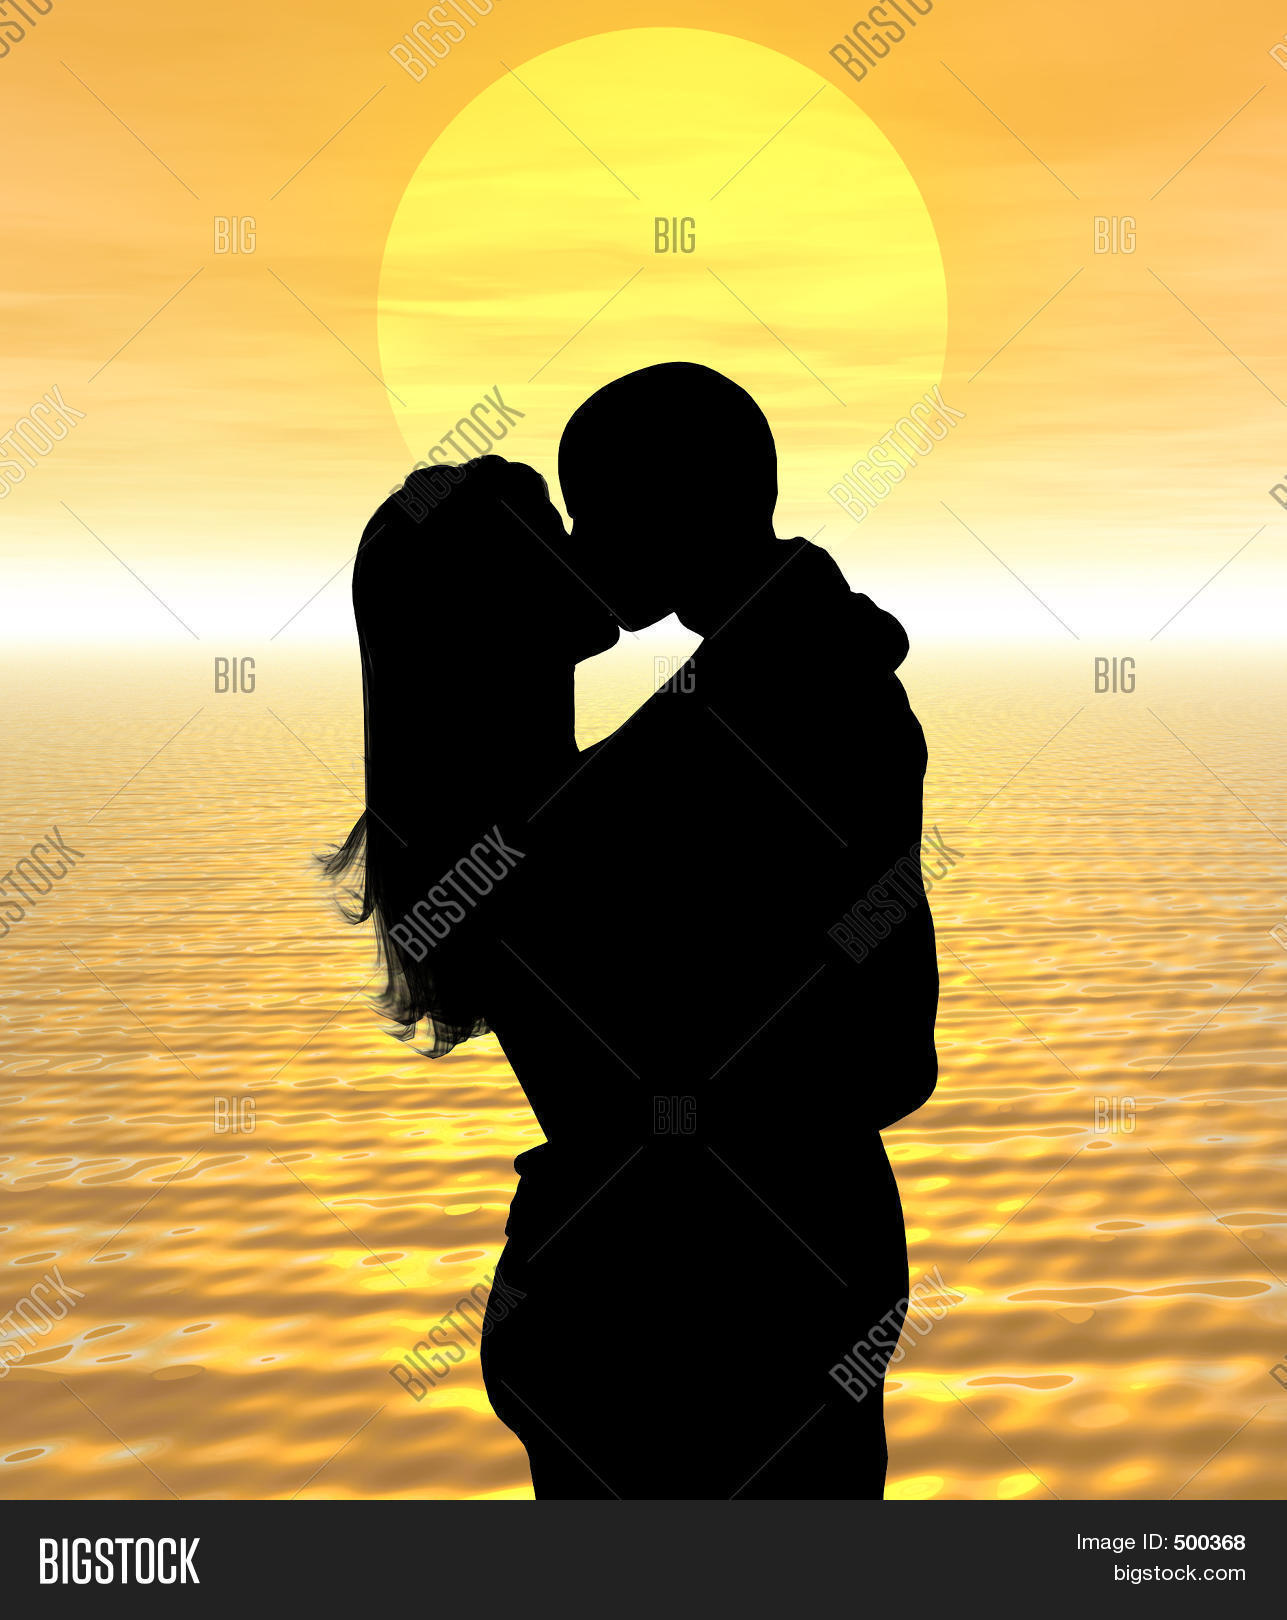 couple silhouette images illustrations vectors free bigstock